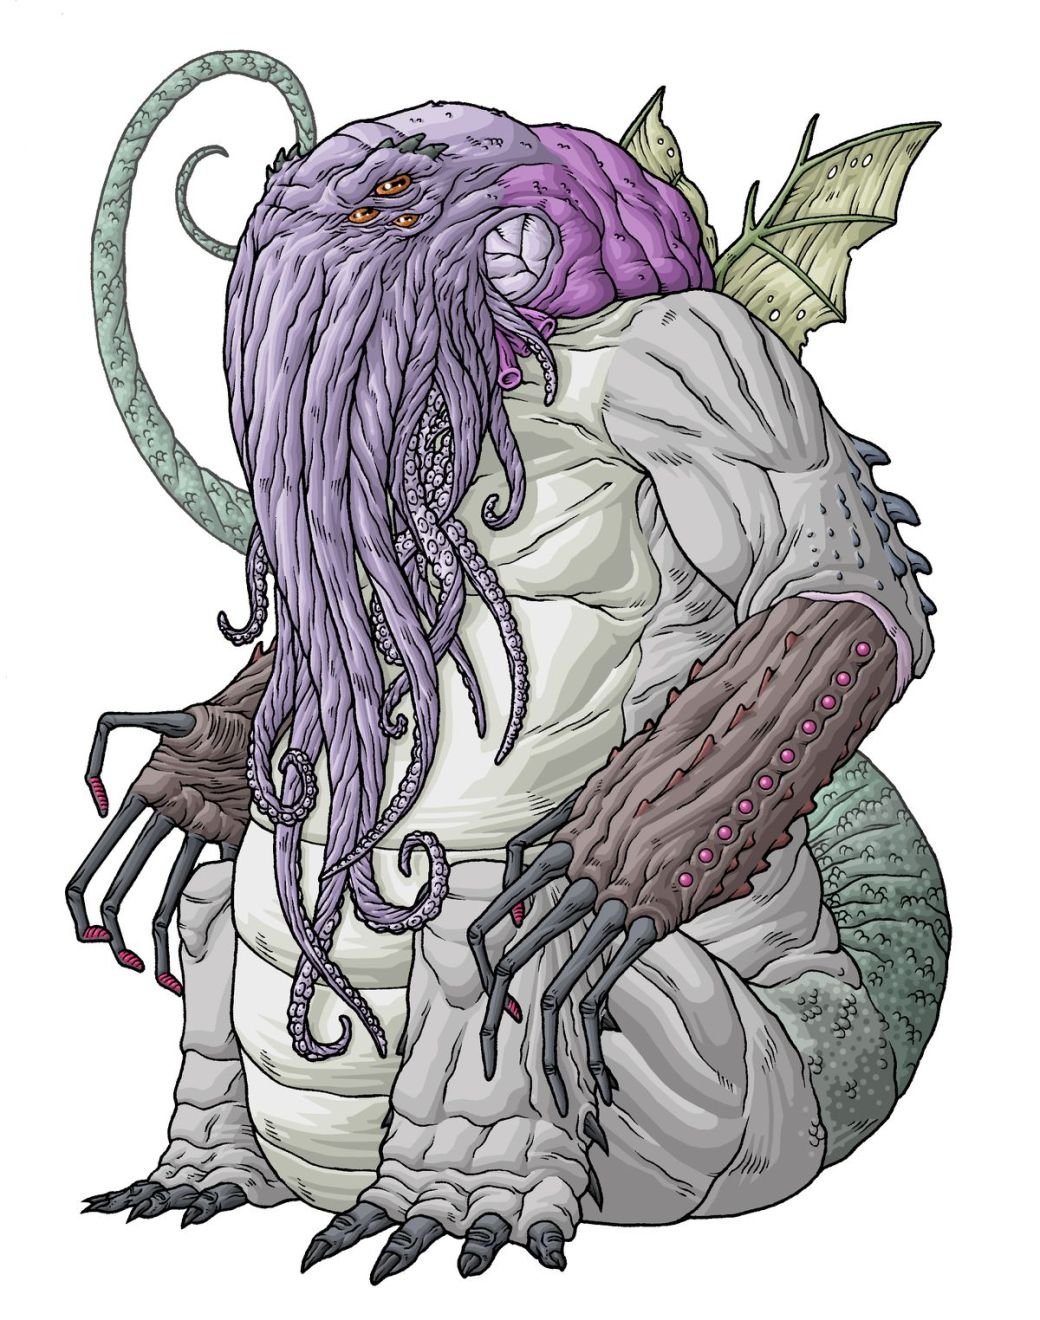 HP Lovecraft's Cthulhu